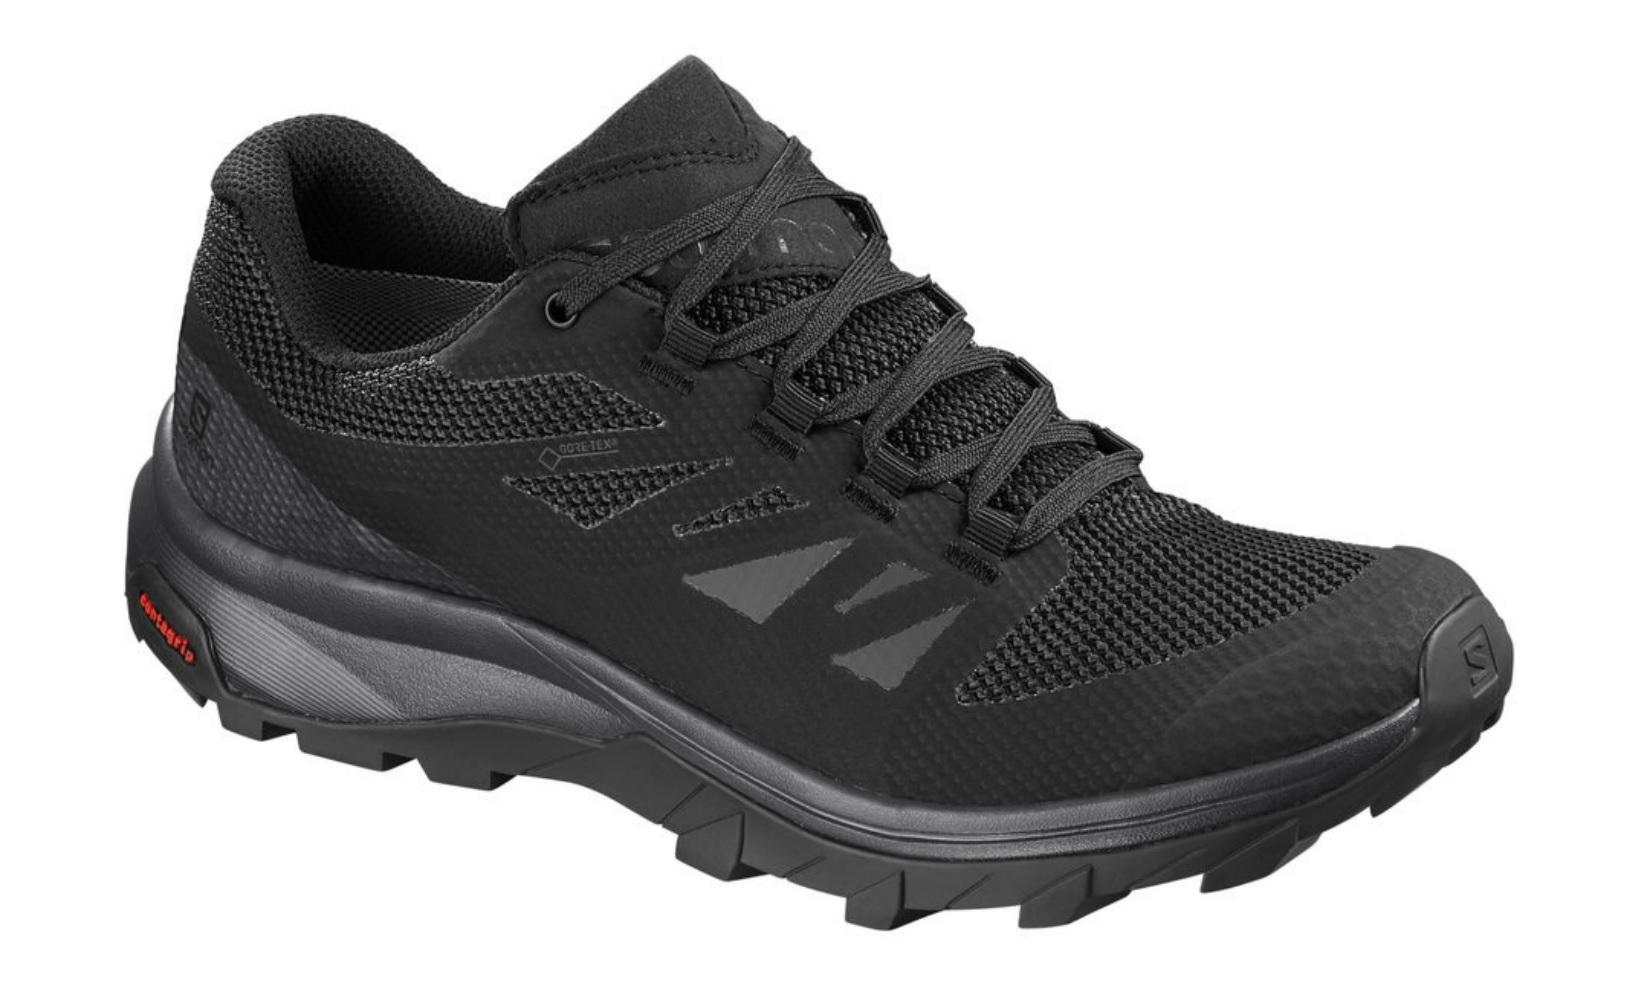 Salomon Ghete drumetie Salomon Outline Gore-Tex